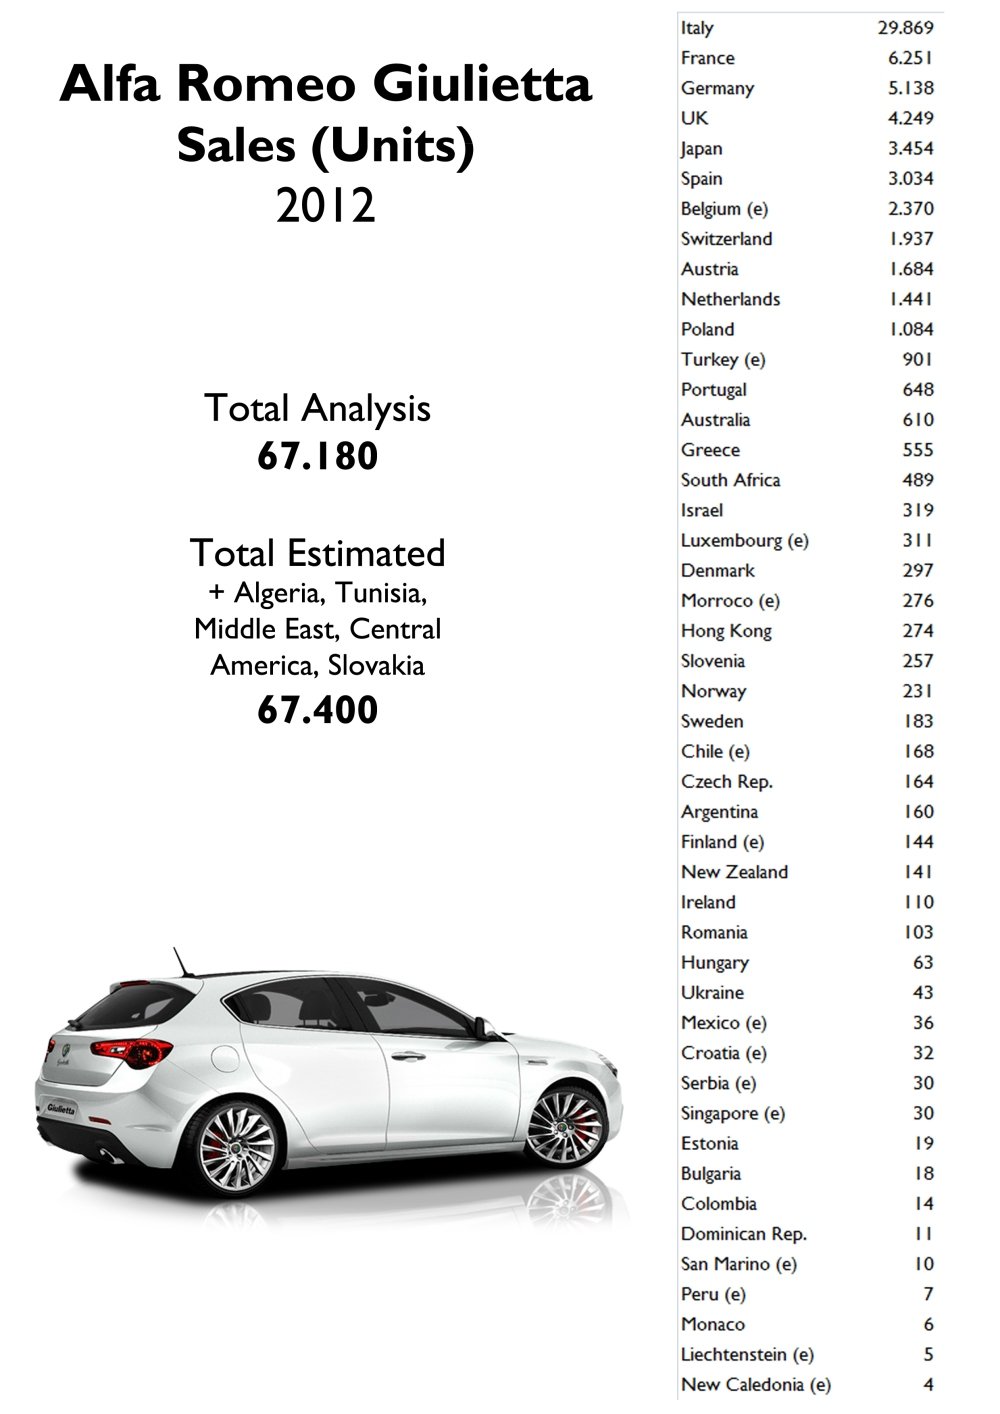 The Giulietta is sold in so many countries but the big markets are still missing: USA, China, Russia, Brazil and Canada. Source: FGW Data Basis, Best Selling Cars Blog